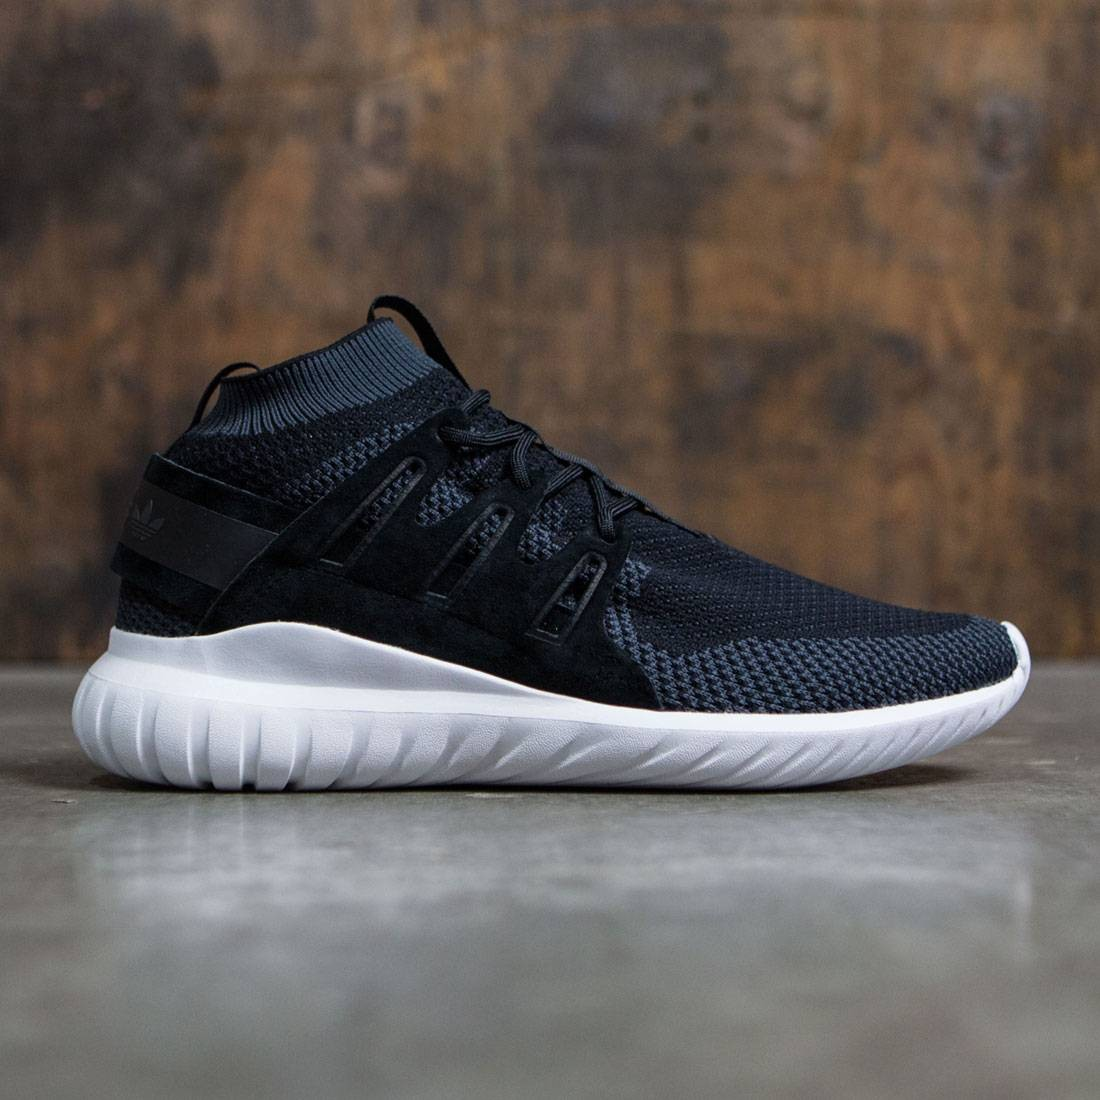 check out 89cf9 8c550 Adidas Men Tubular Nova Primeknit (black / dark grey / vintage white)